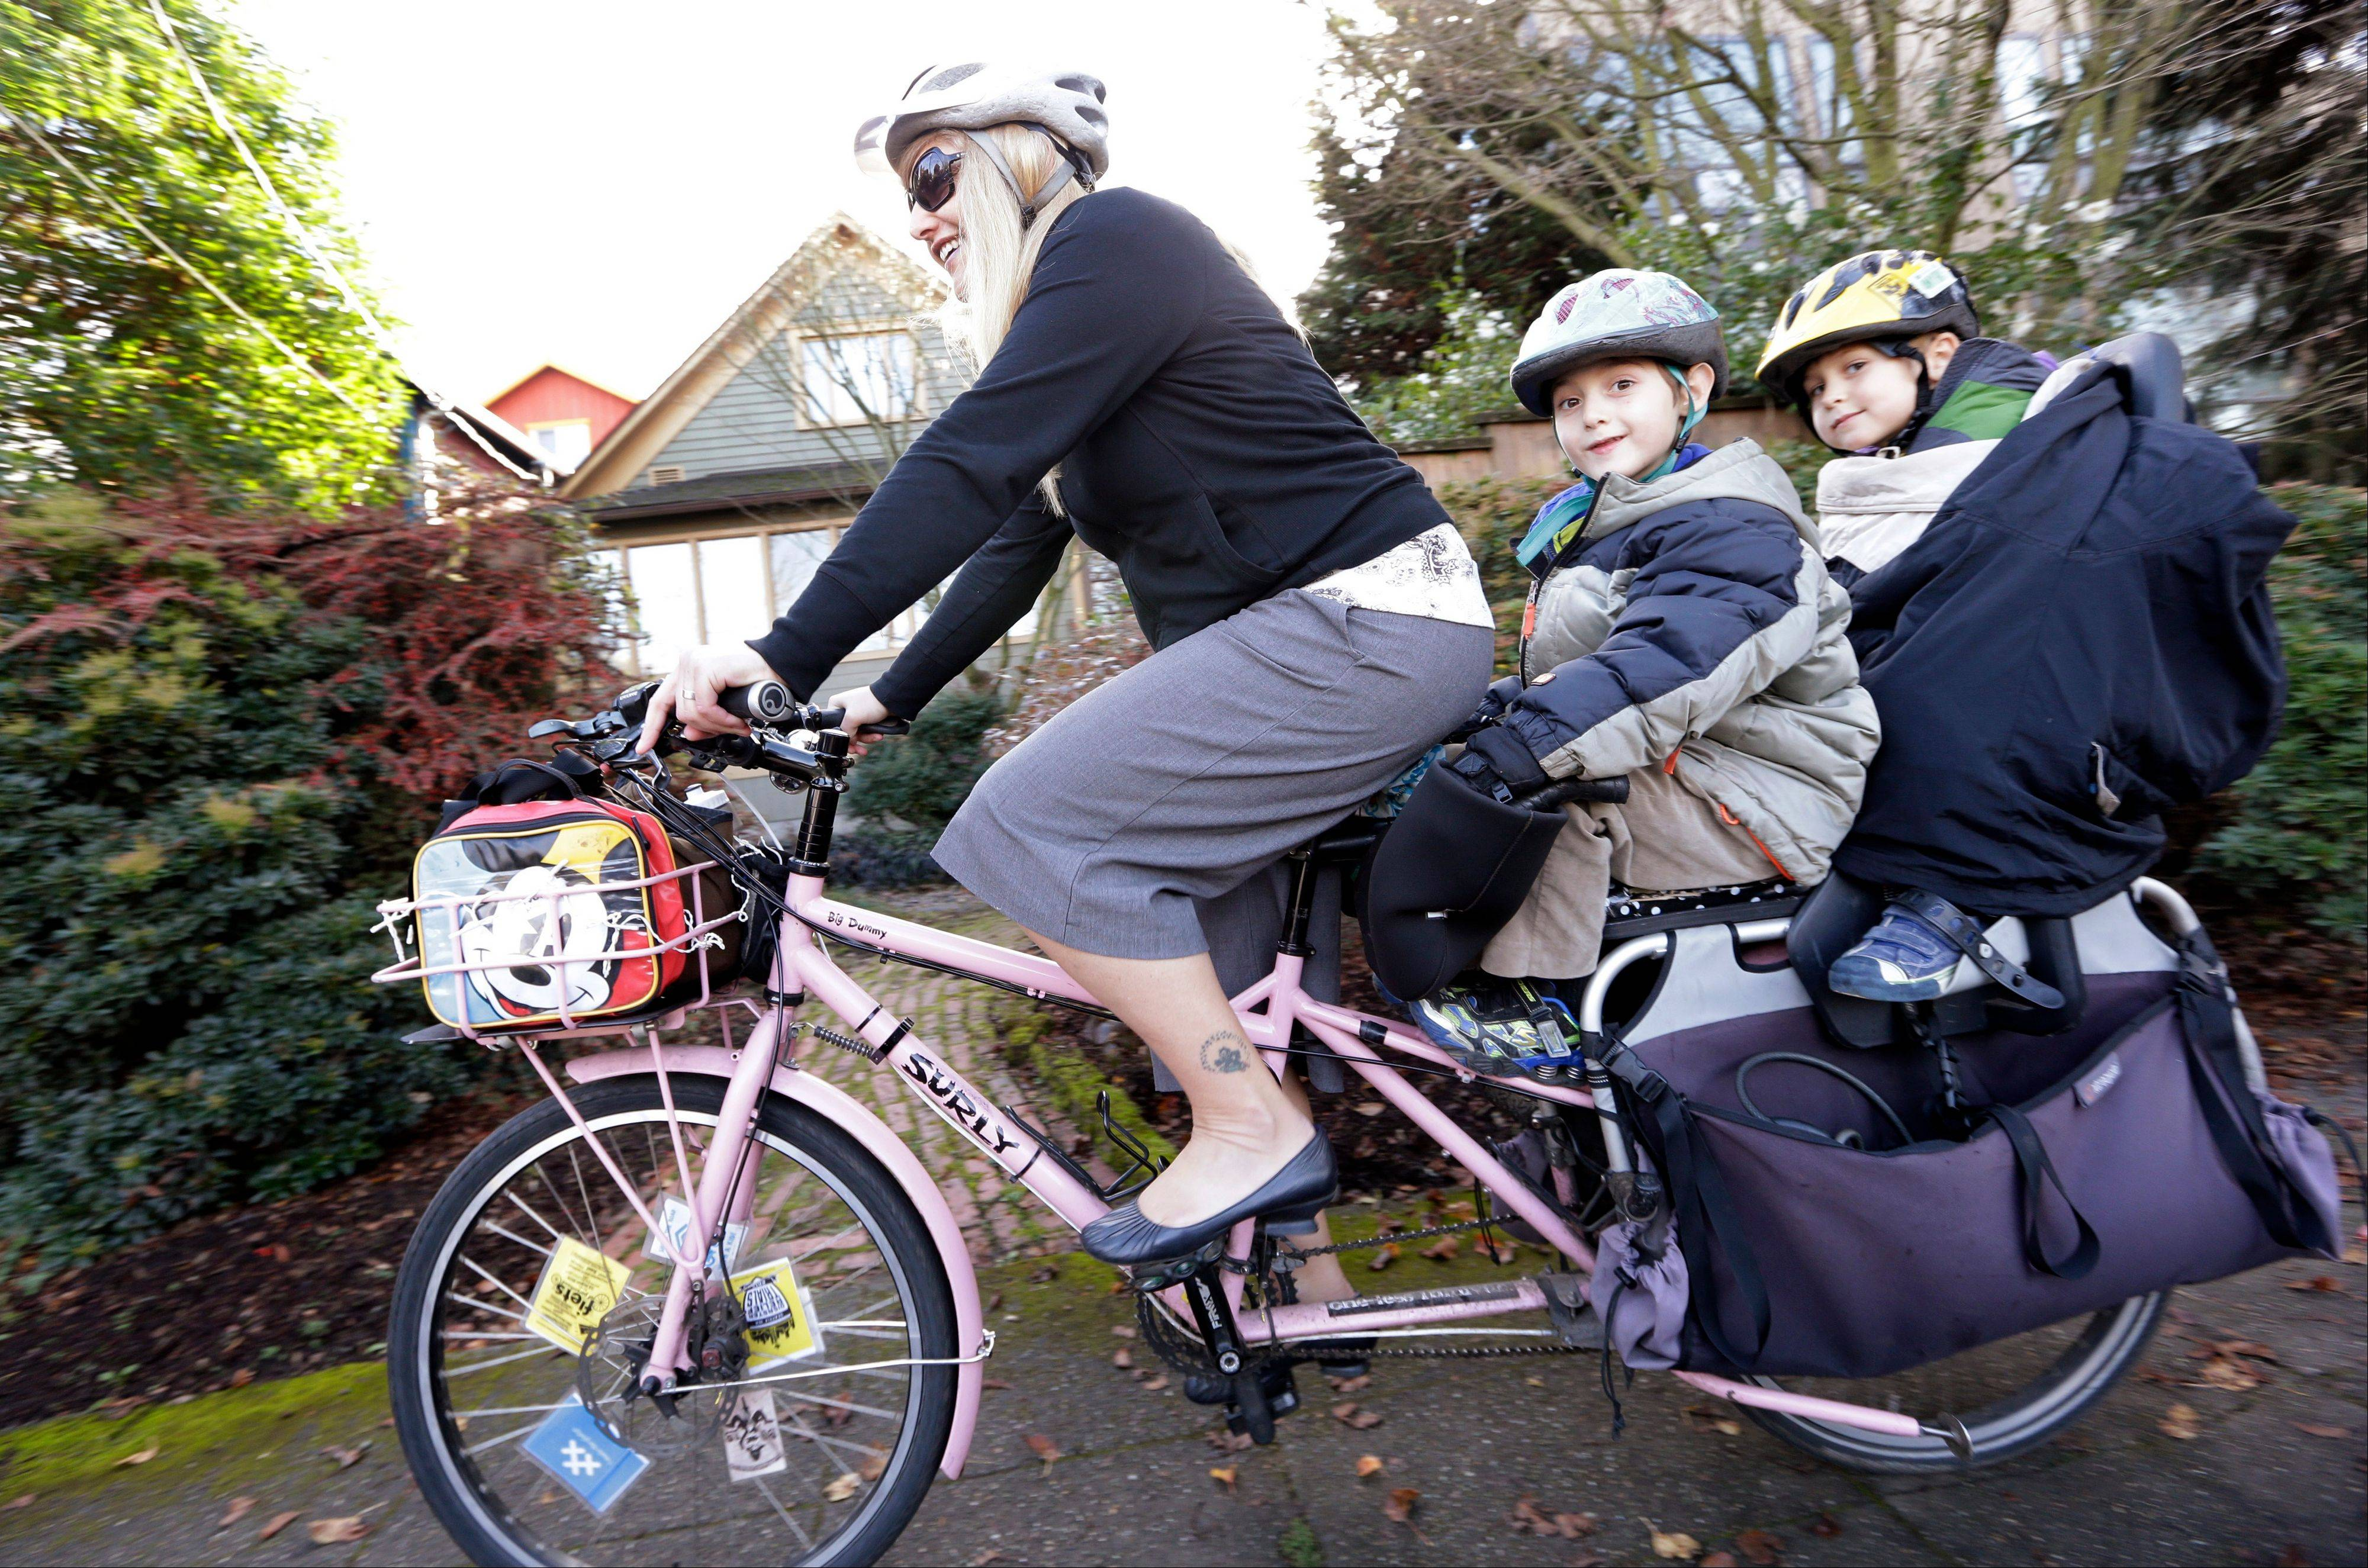 Madi Carlson pedals as her sons Rijder, 4, right, and Brandt, 6, ride aboard the family cargo bike as they head to an after-school gym program in Seattle.